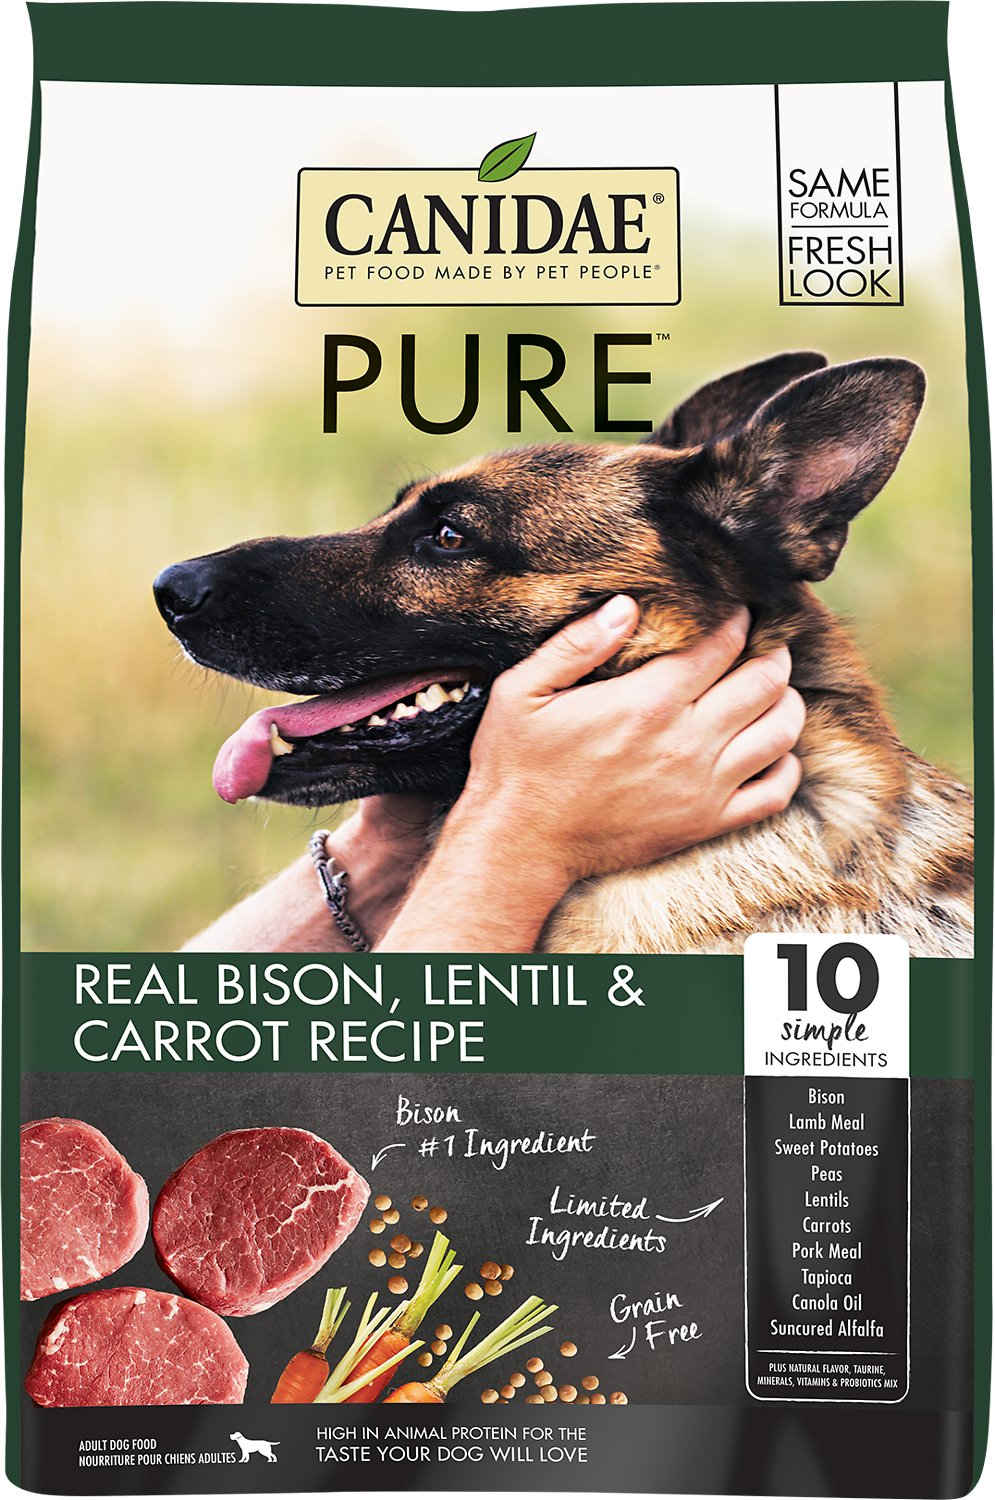 Canidae Grain-Free PURE Real Bison, Lentil & Carrot Recipe Dry Dog Food Image